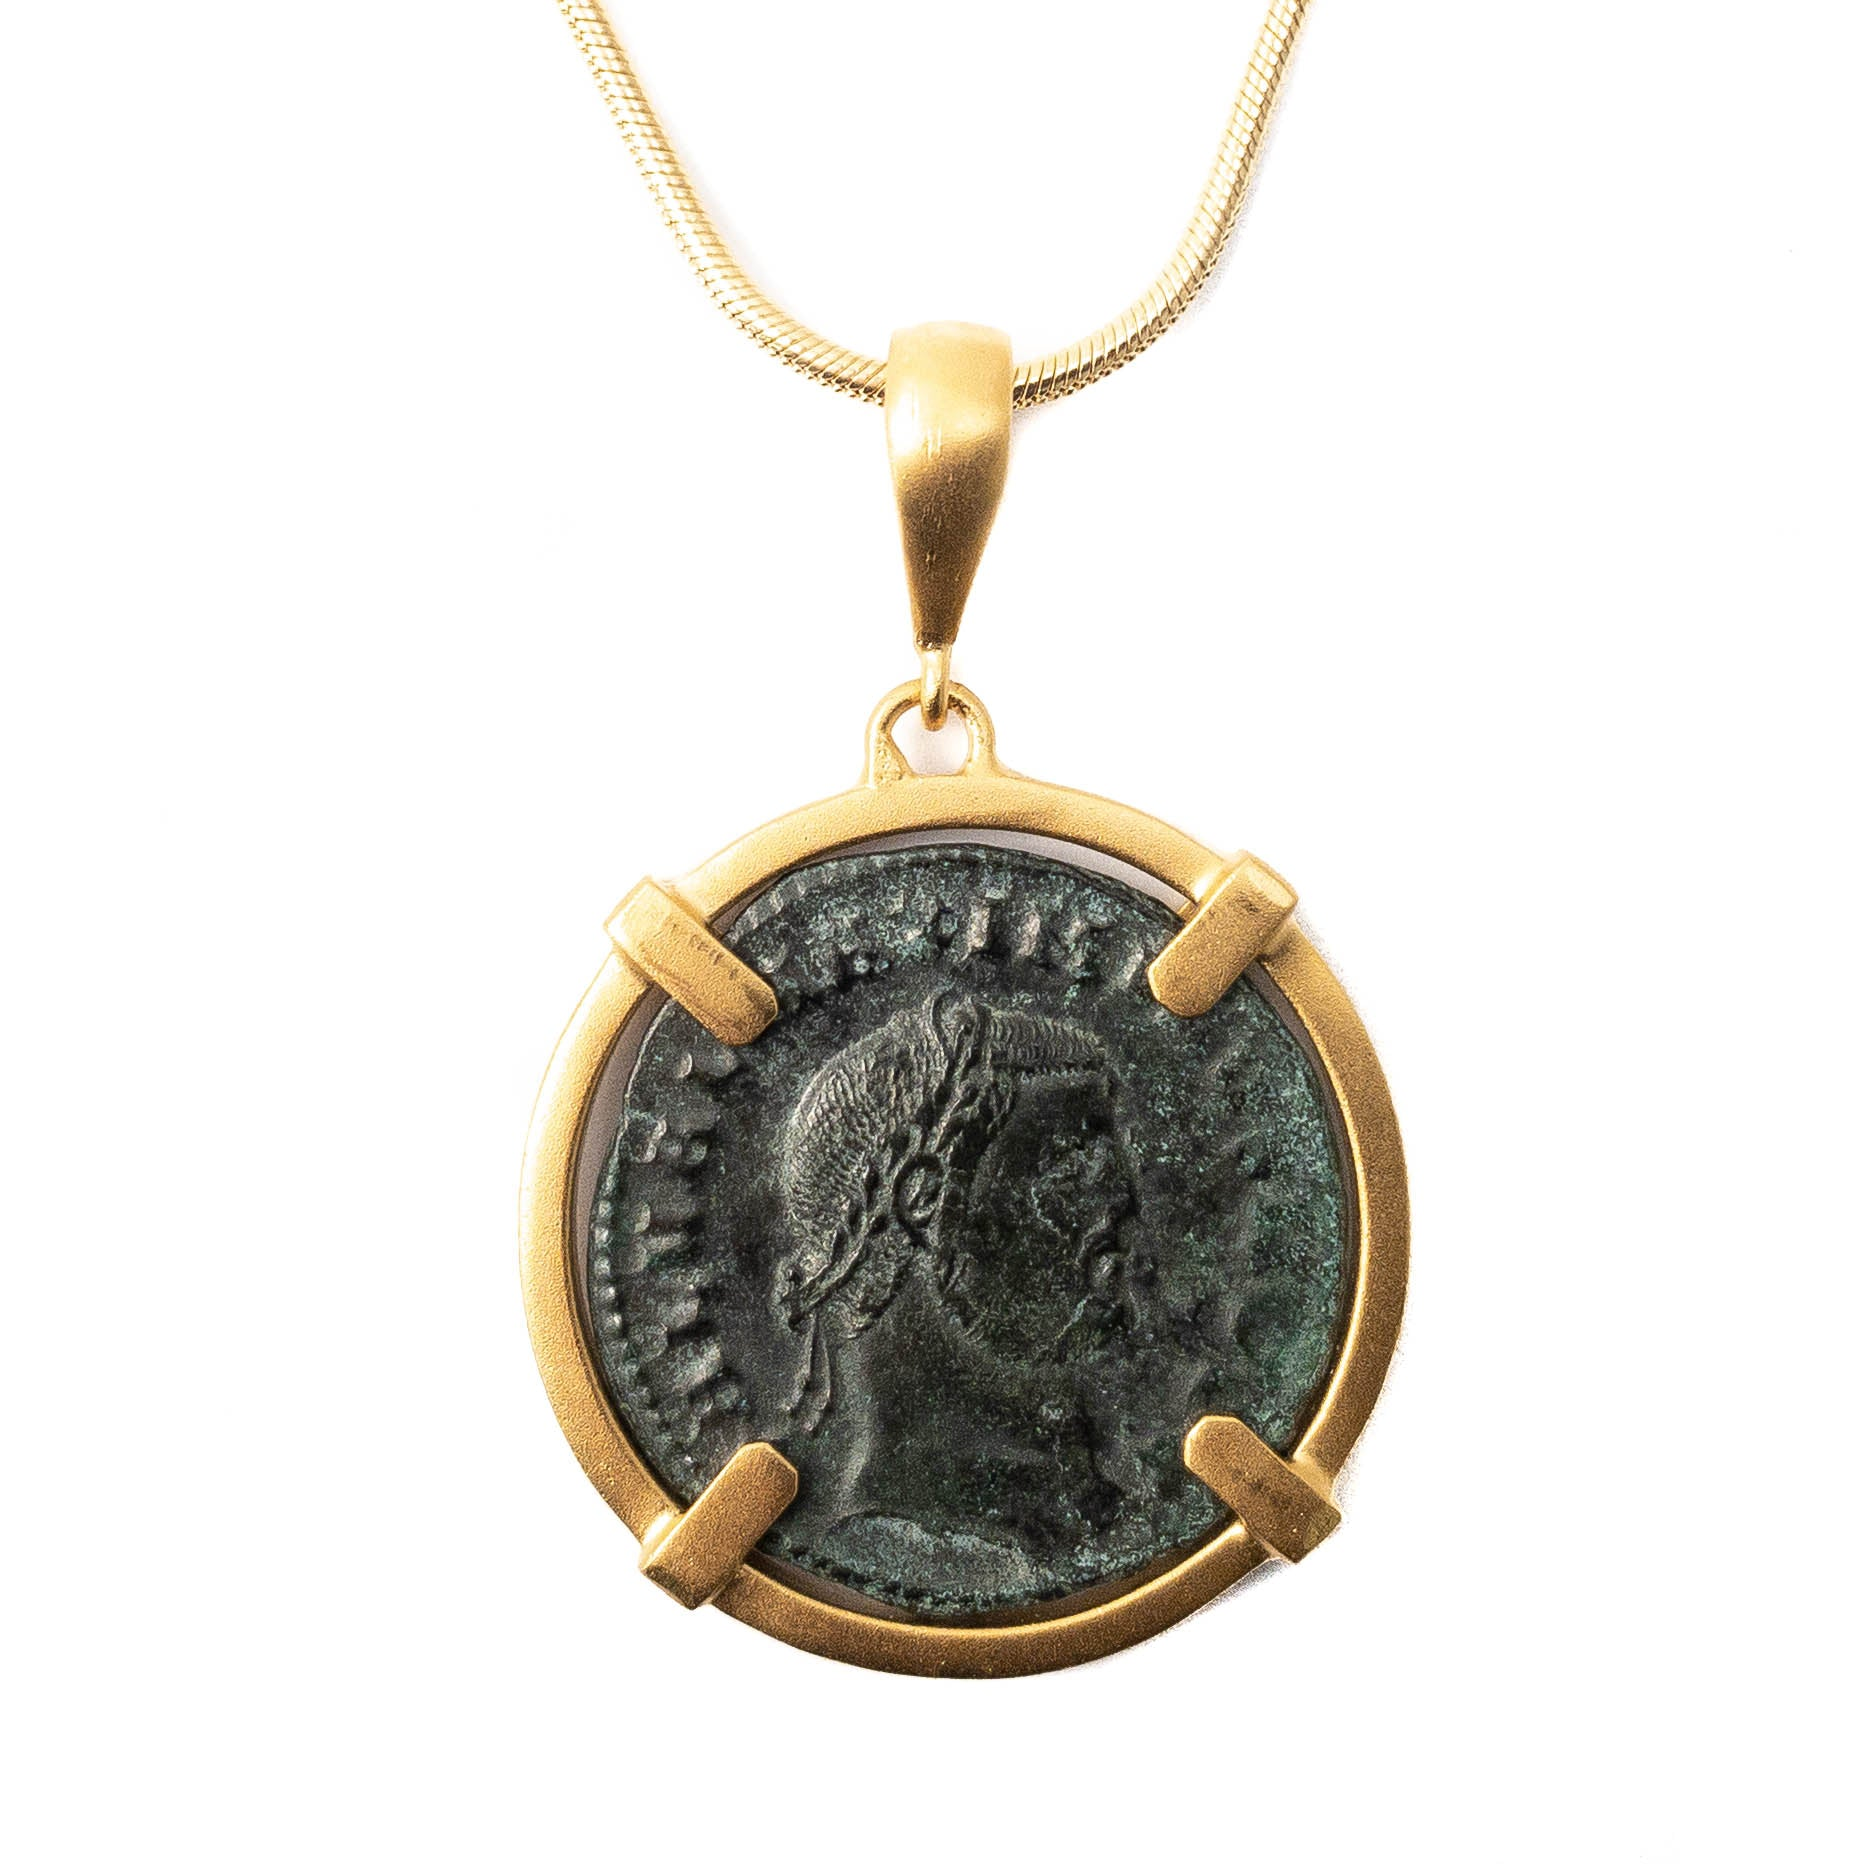 Genuine Ancient Roman Coin Necklace (MAXIMINUS II, 308-313 AD)